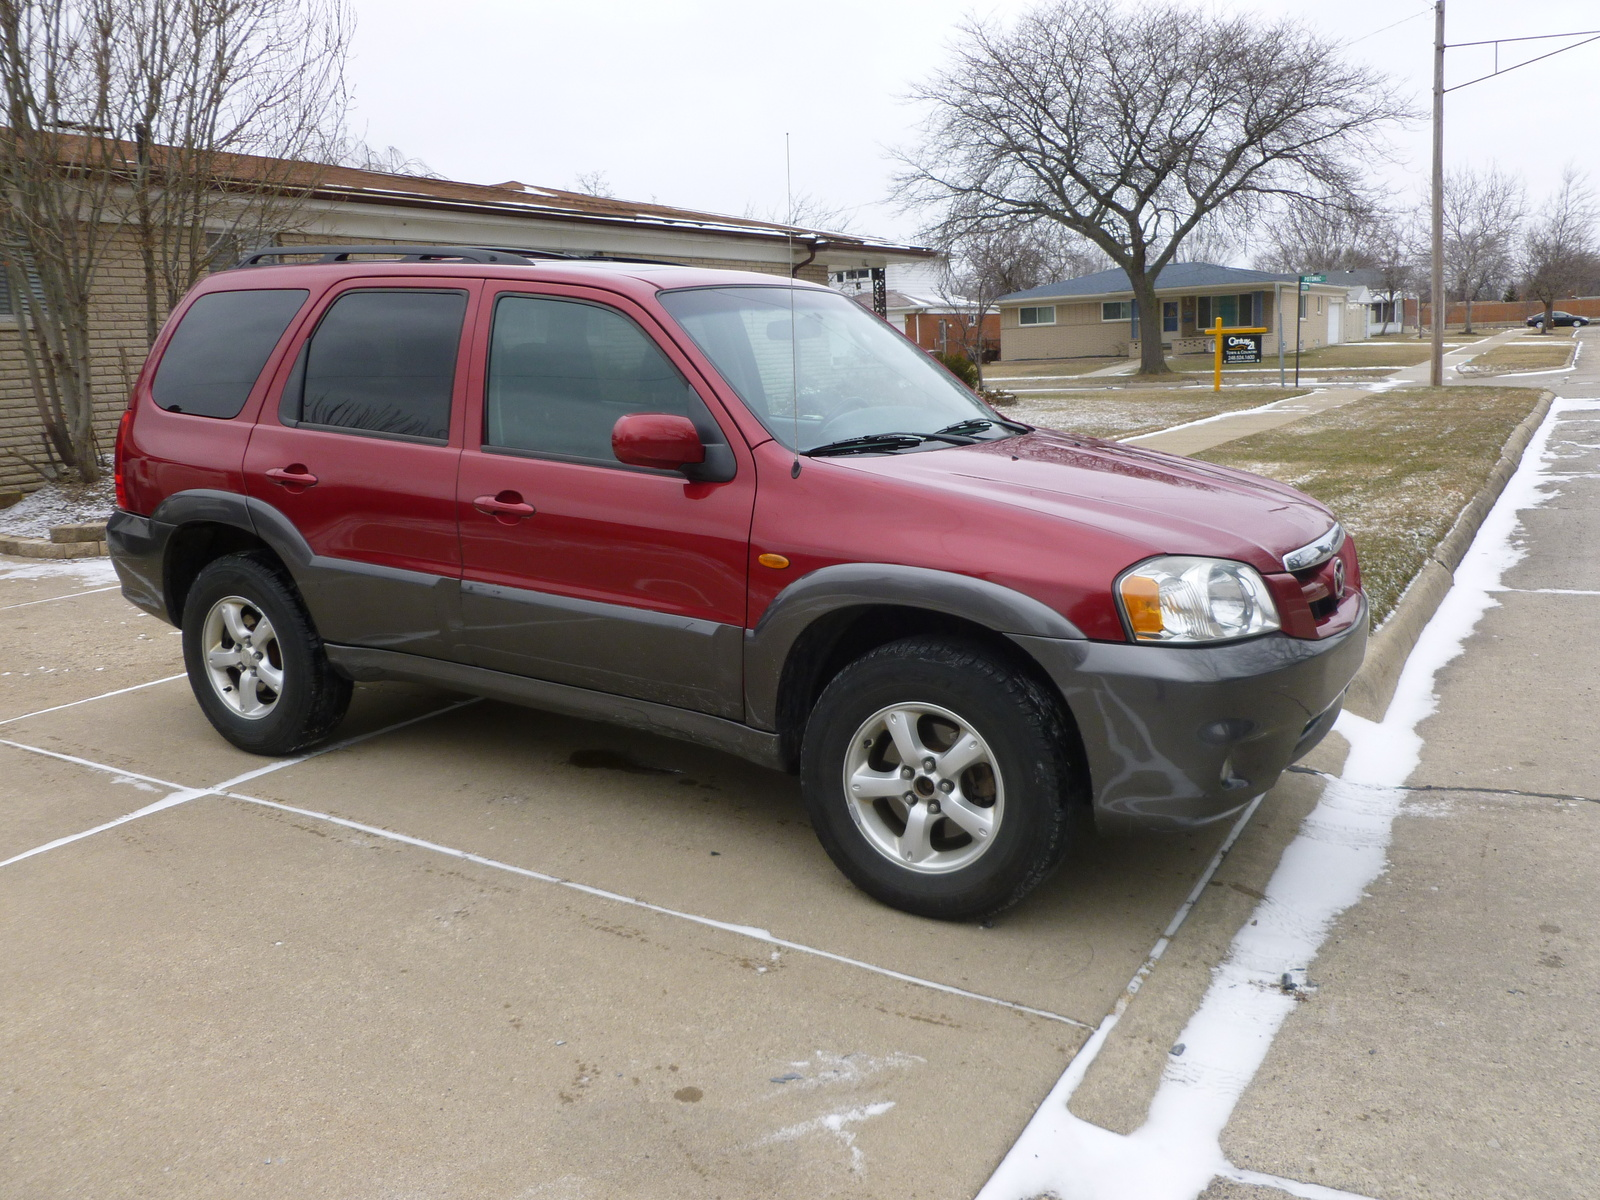 2005 Mazda Tribute picture